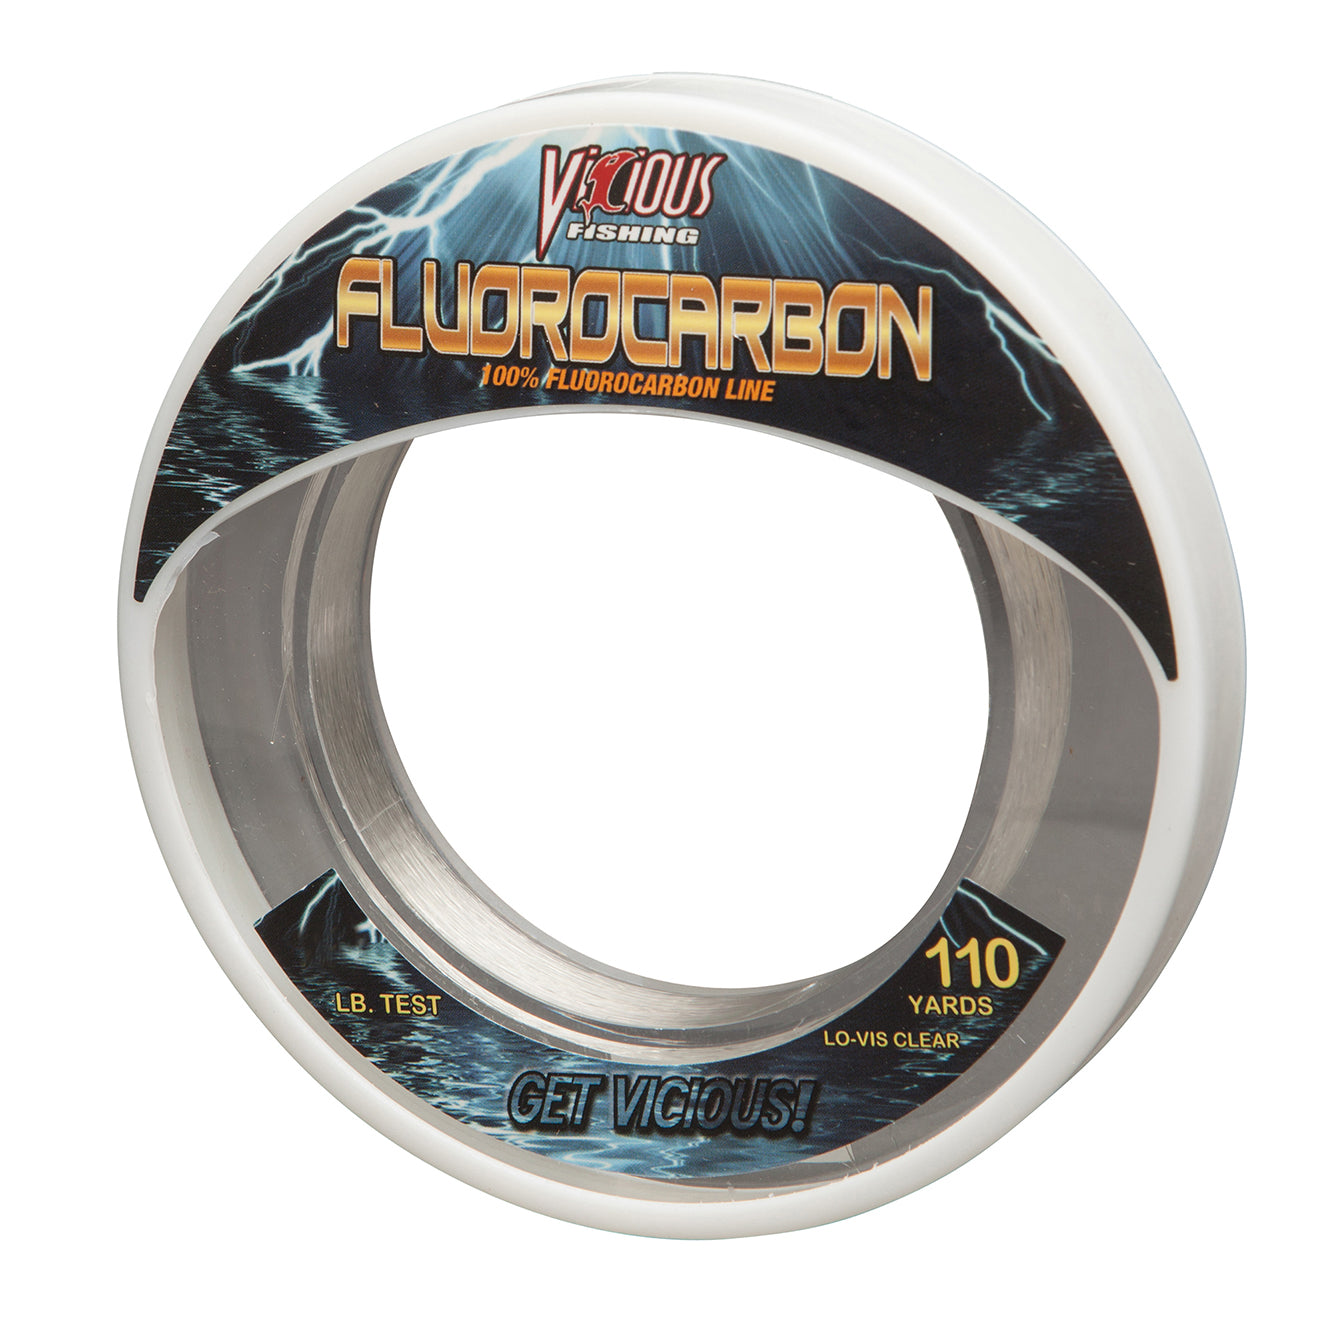 30lb Vicious Fluorocarbon Leader - 110 Yards